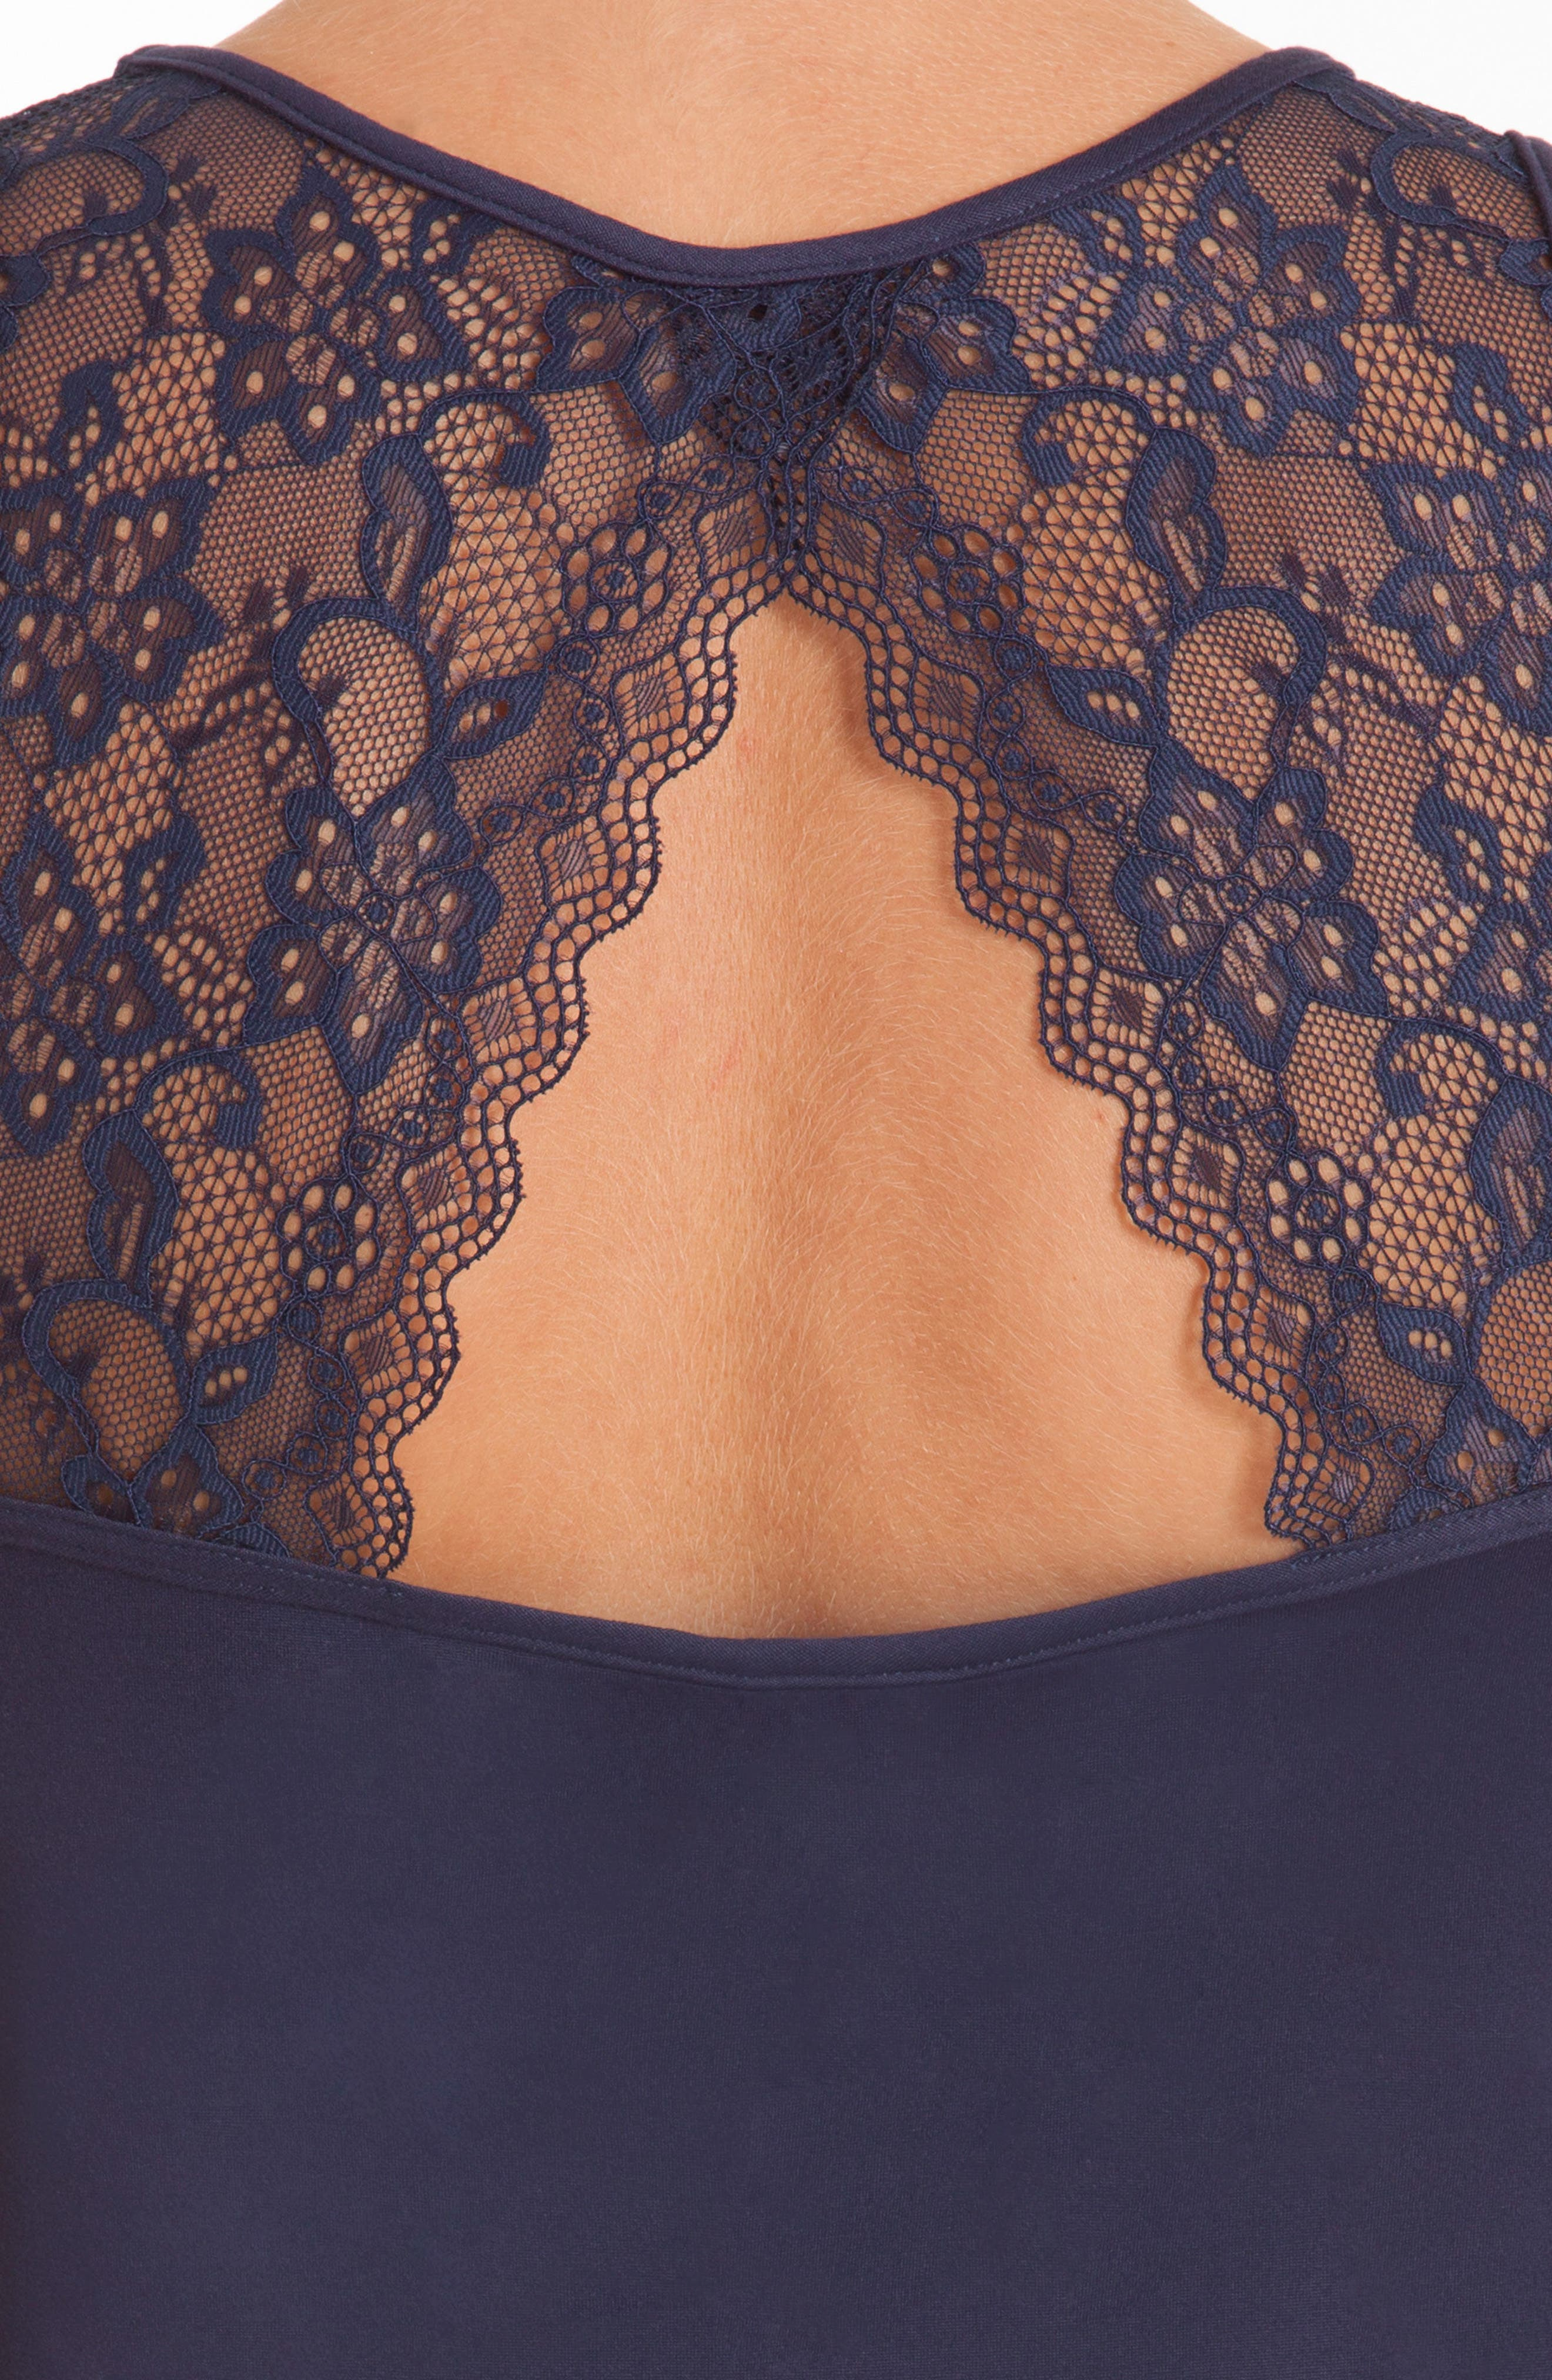 Alternate Image 5  - In Bloom by Jonquil Sahara Camisole